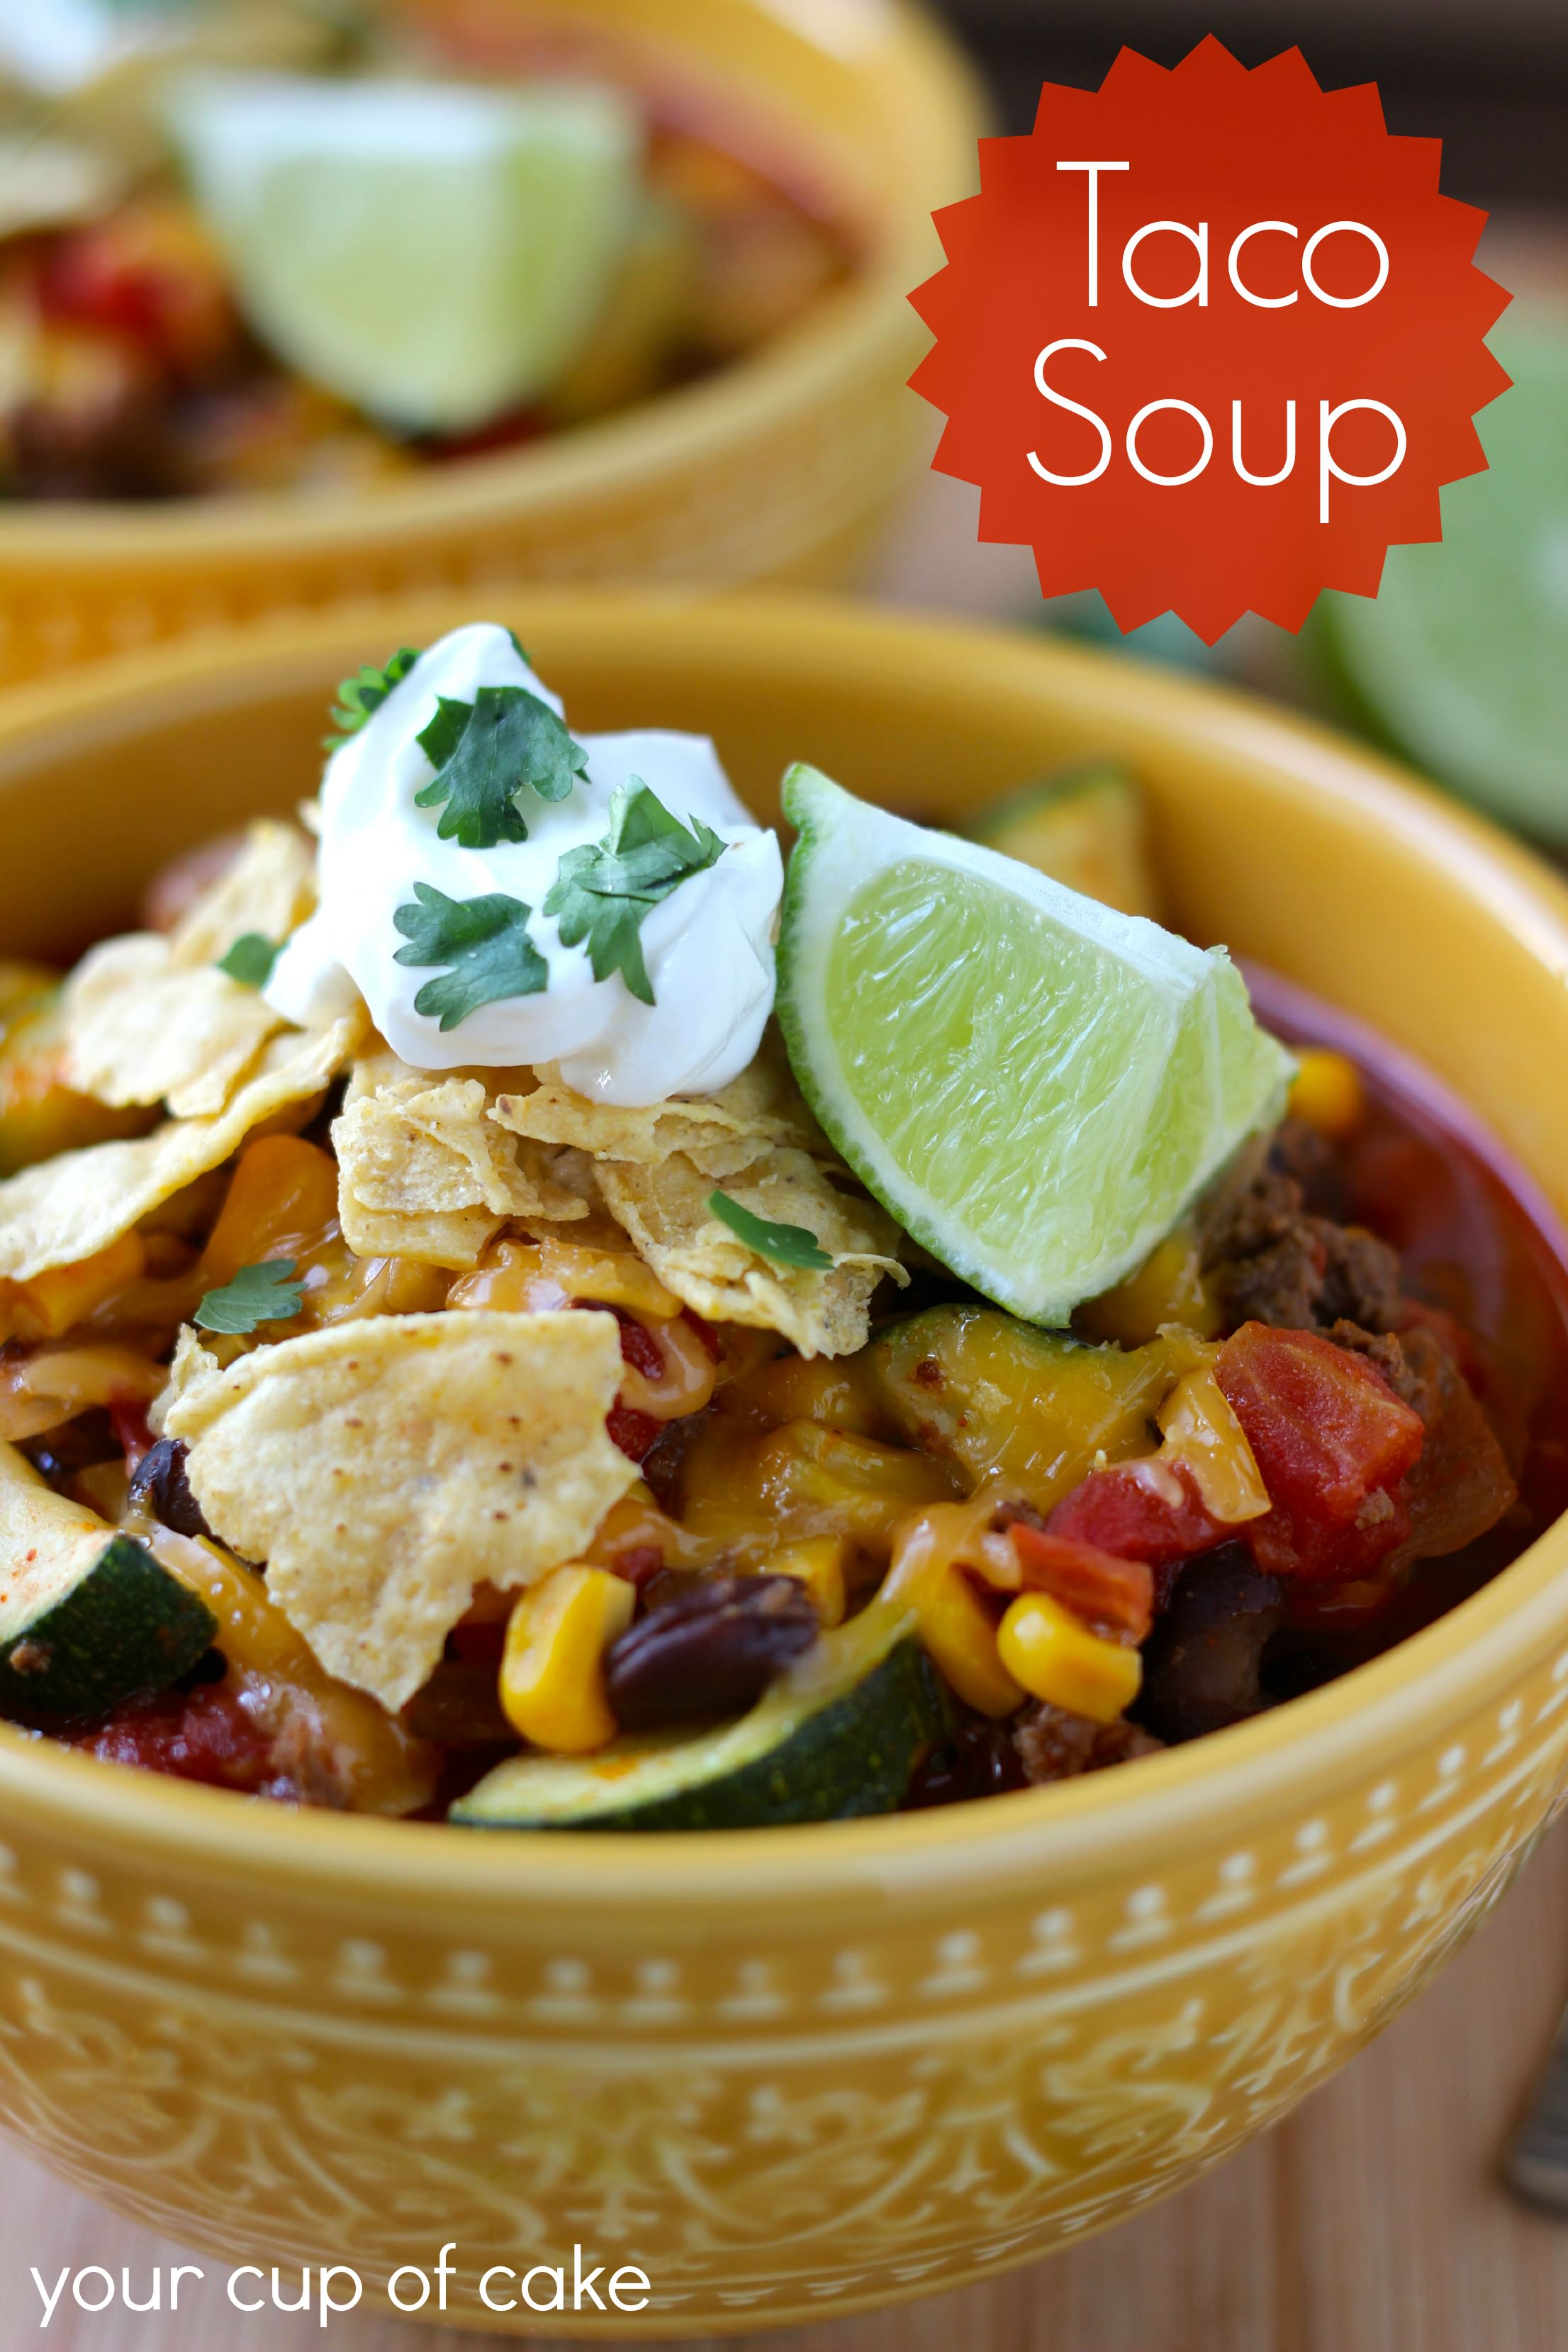 Taco Soup - Your Cup of Cake